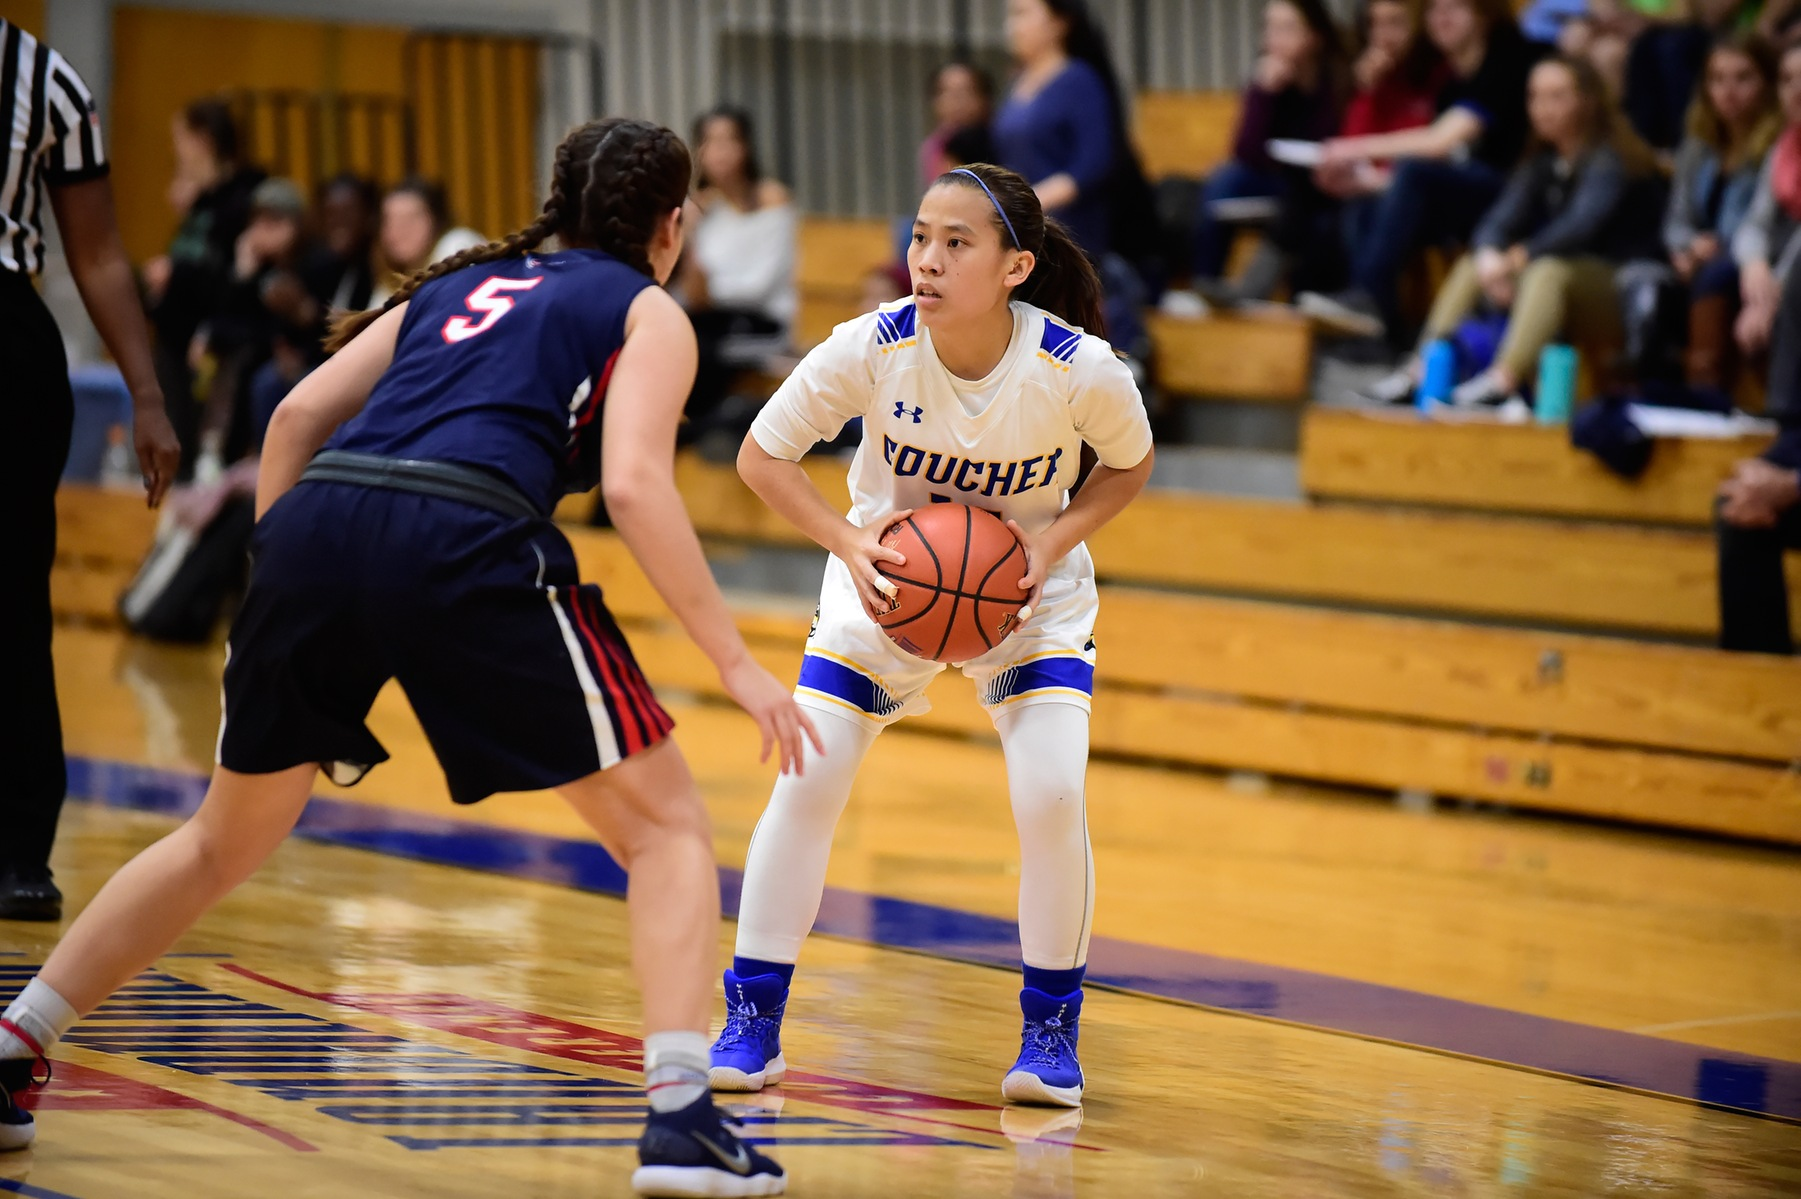 Women's Basketball Falls to Undefeated Scranton in Landmark Conference Opener, 85-48